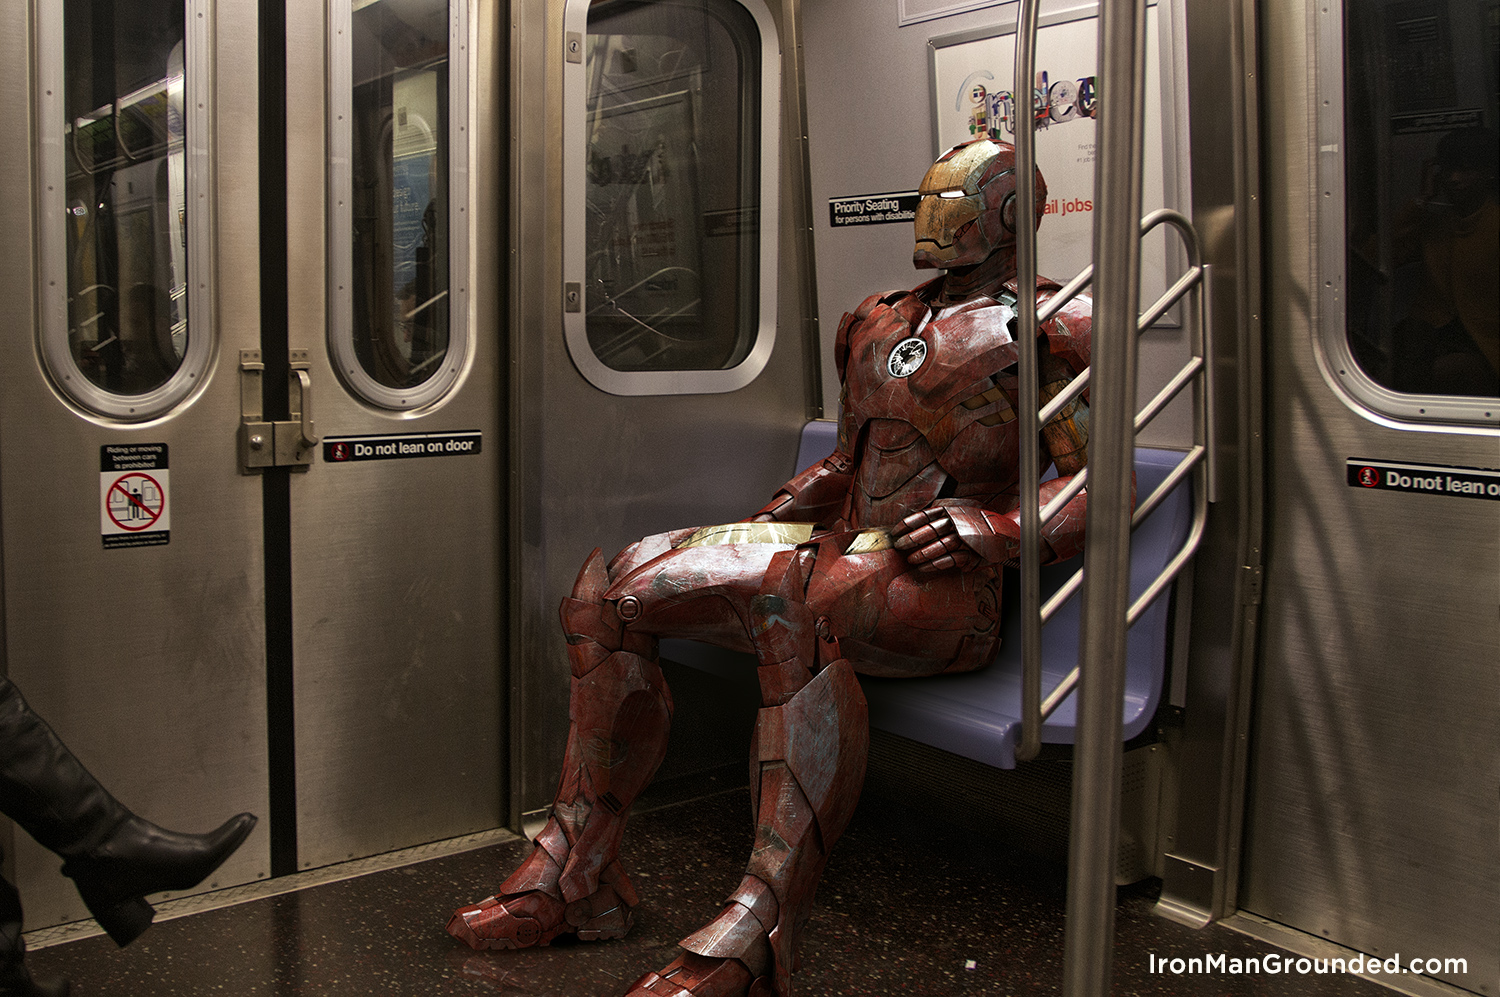 6_iron_man_grounded_rides_new_york_subway_raffael_dickreuter